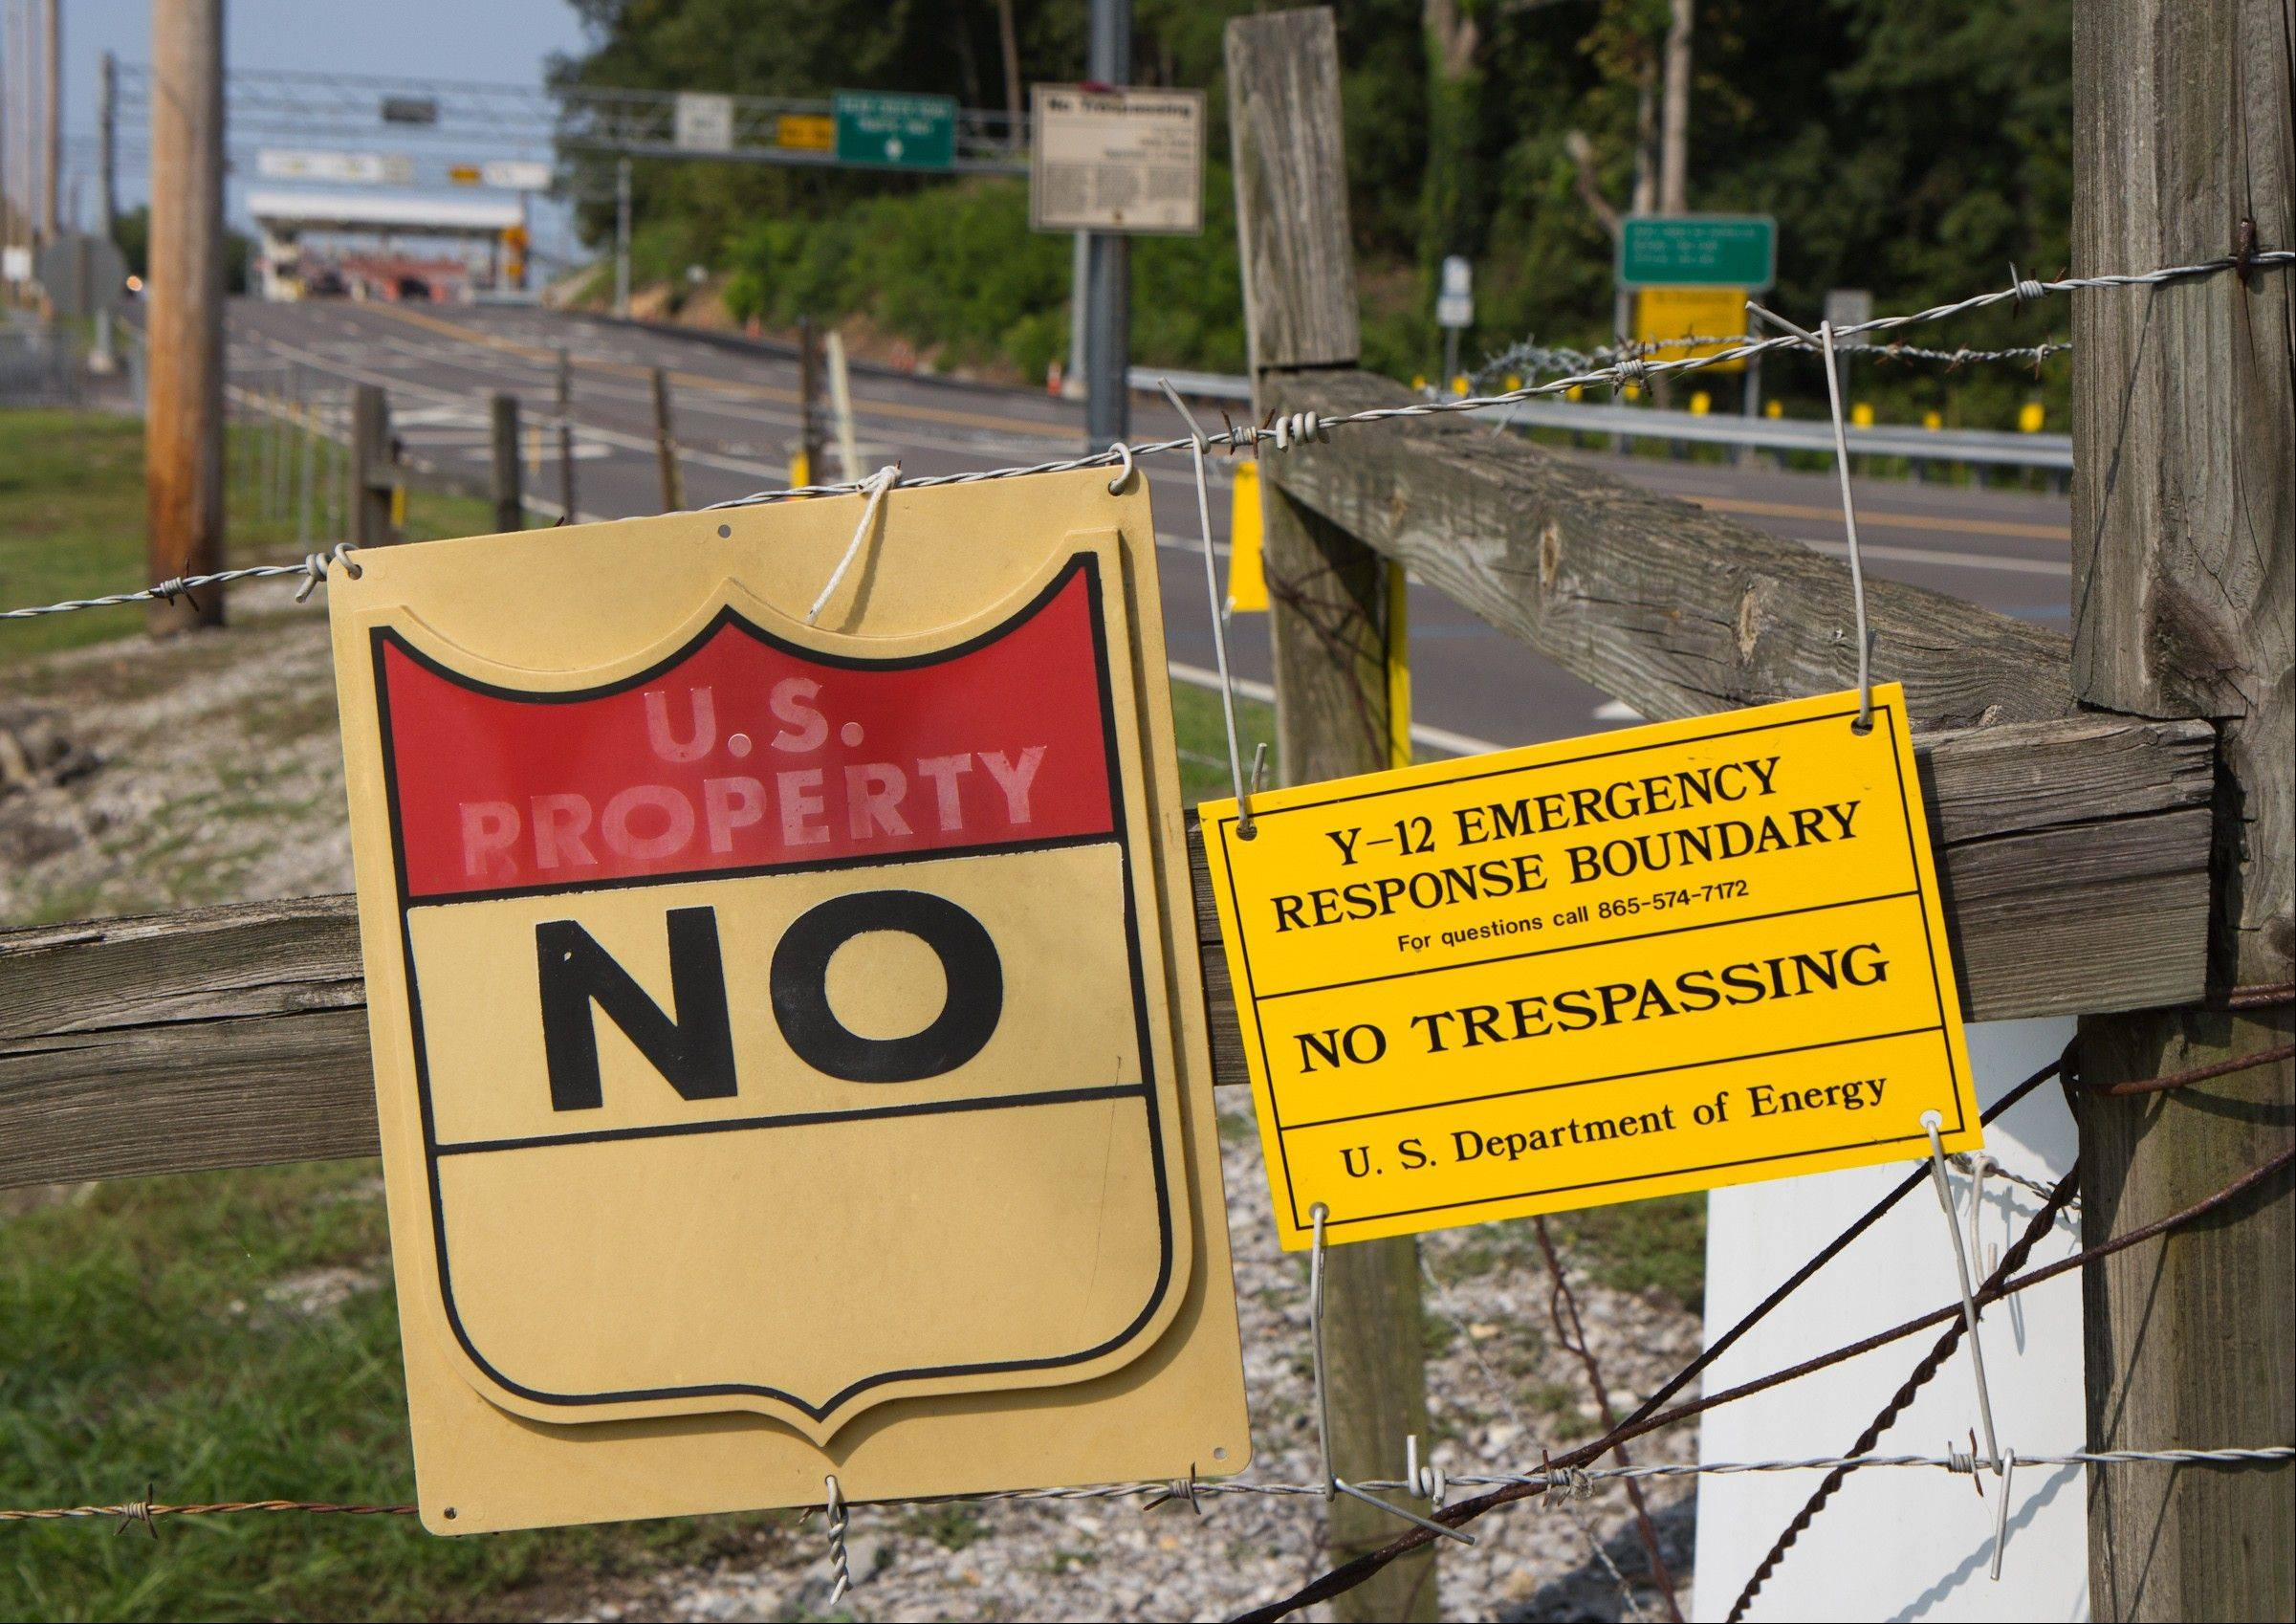 Signs warn against trespassing onto the Y-12 National Security Complex in Oak Ridge, Tenn.